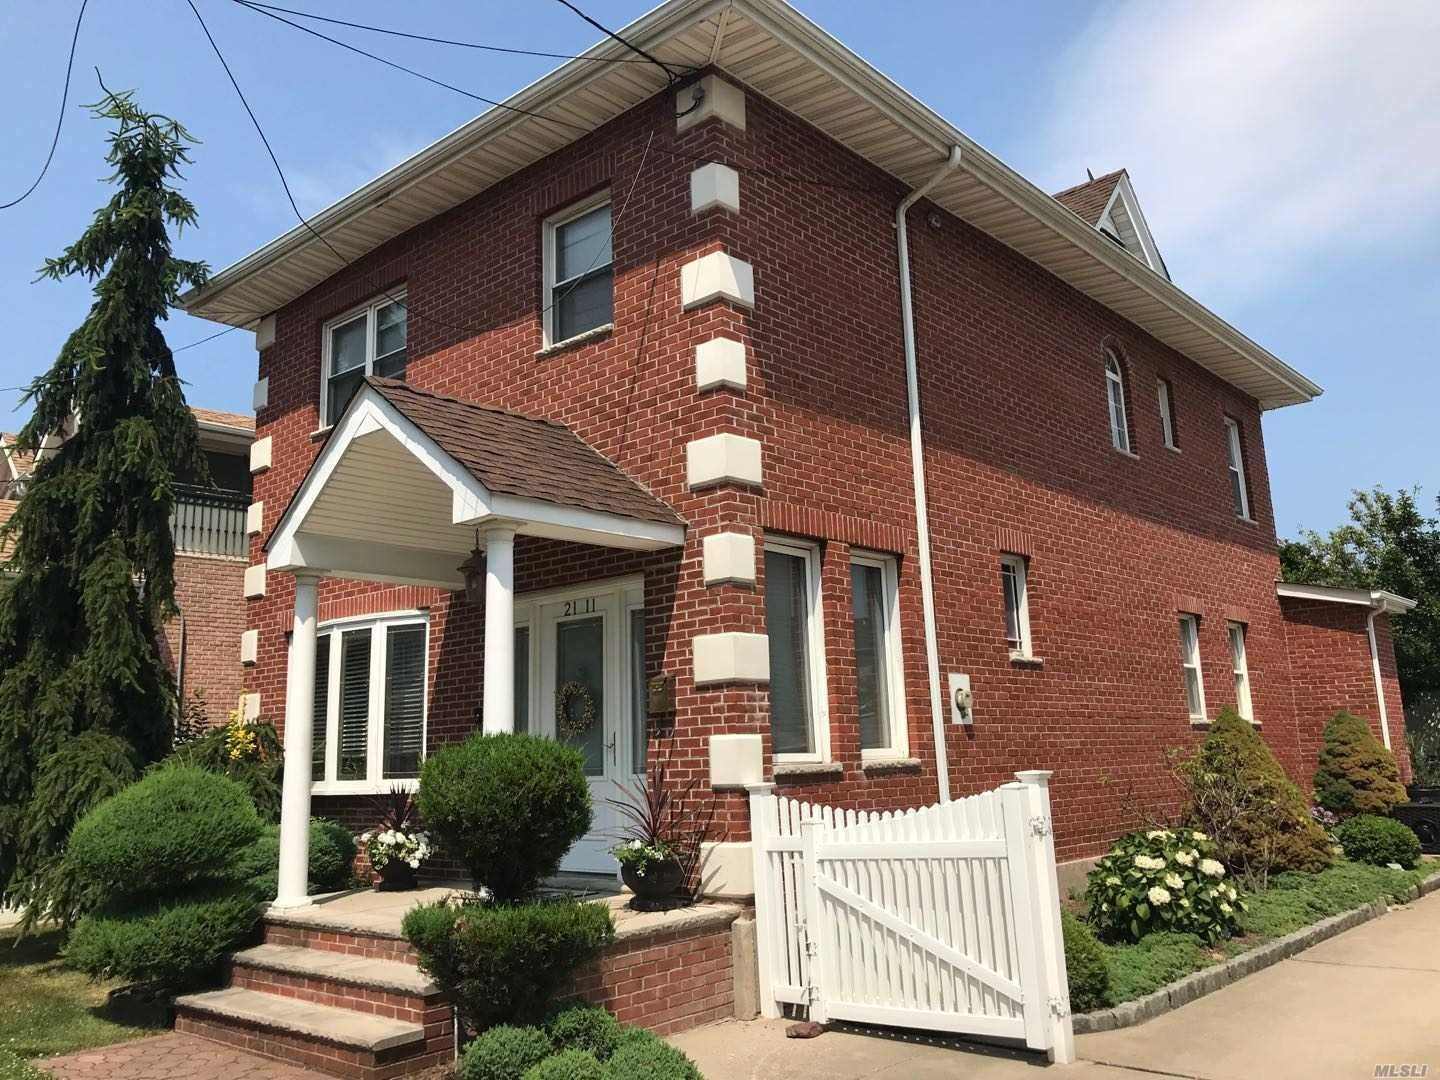 21-11 149 Street, Whitestone, NY 11357 - MLS#: 3229315